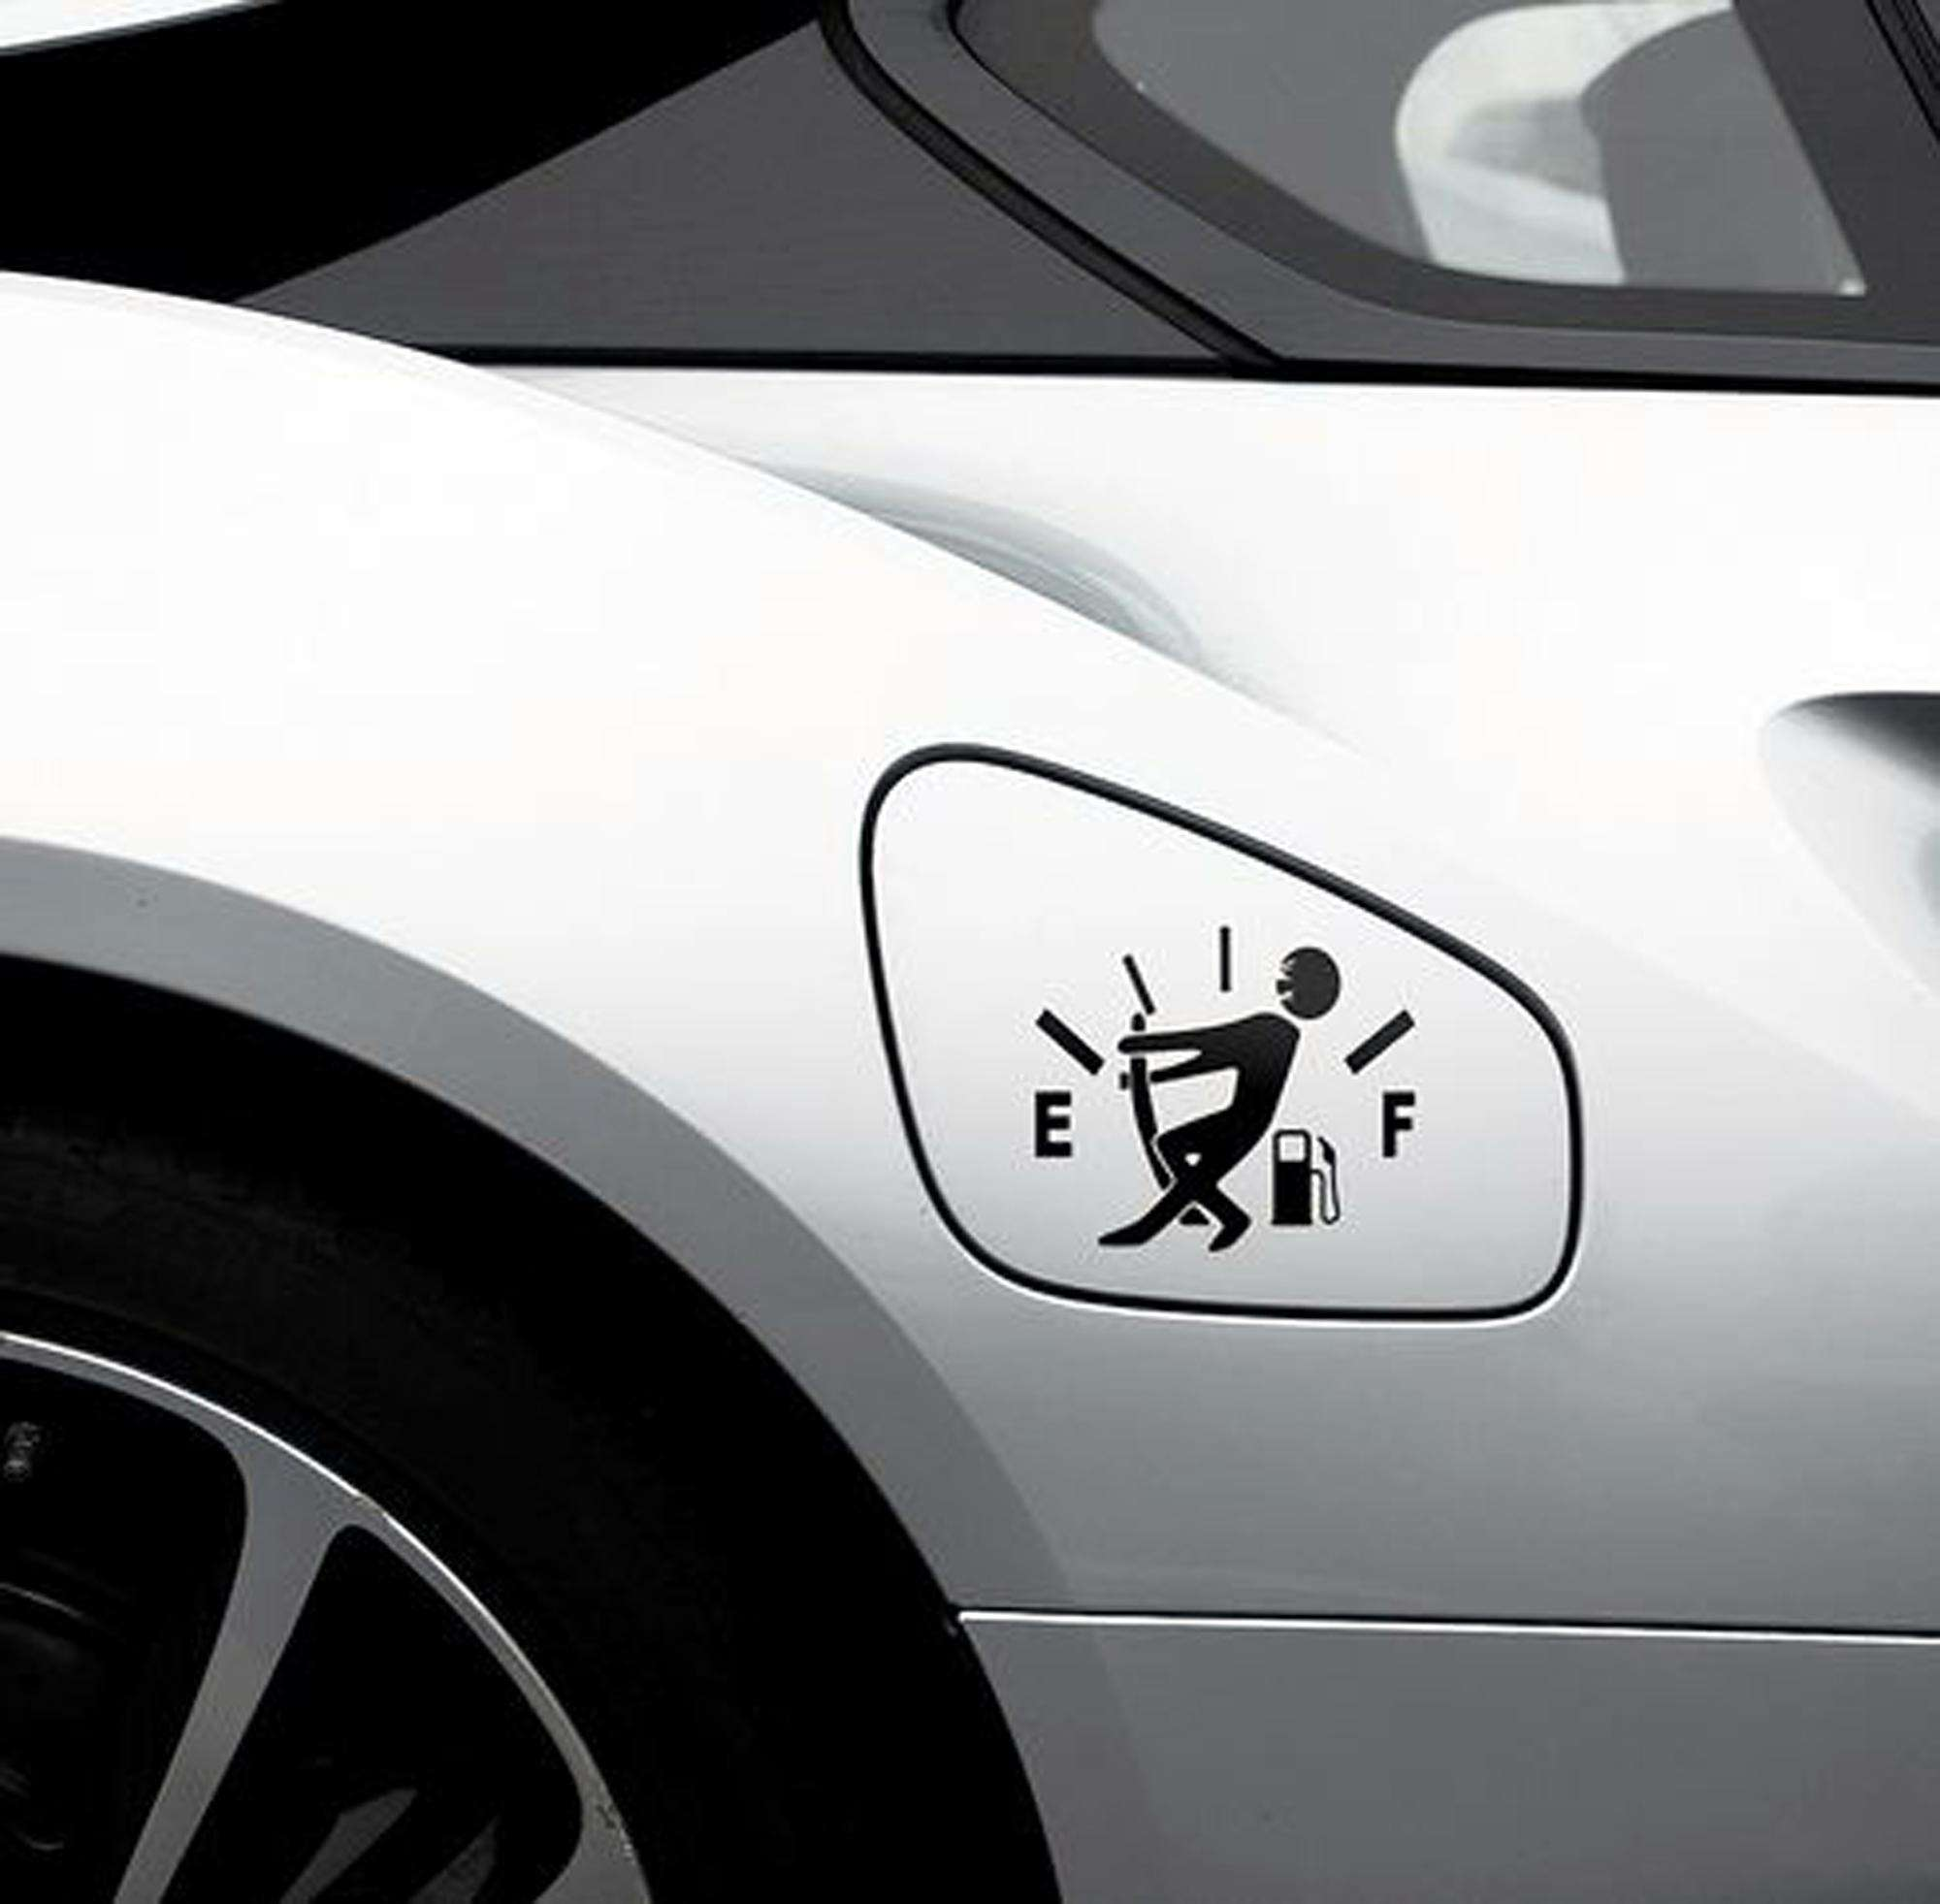 Hot JDM Funny Pull Fuel Tank Pointer To Full Delicate Vinyl Car Sticker Decal